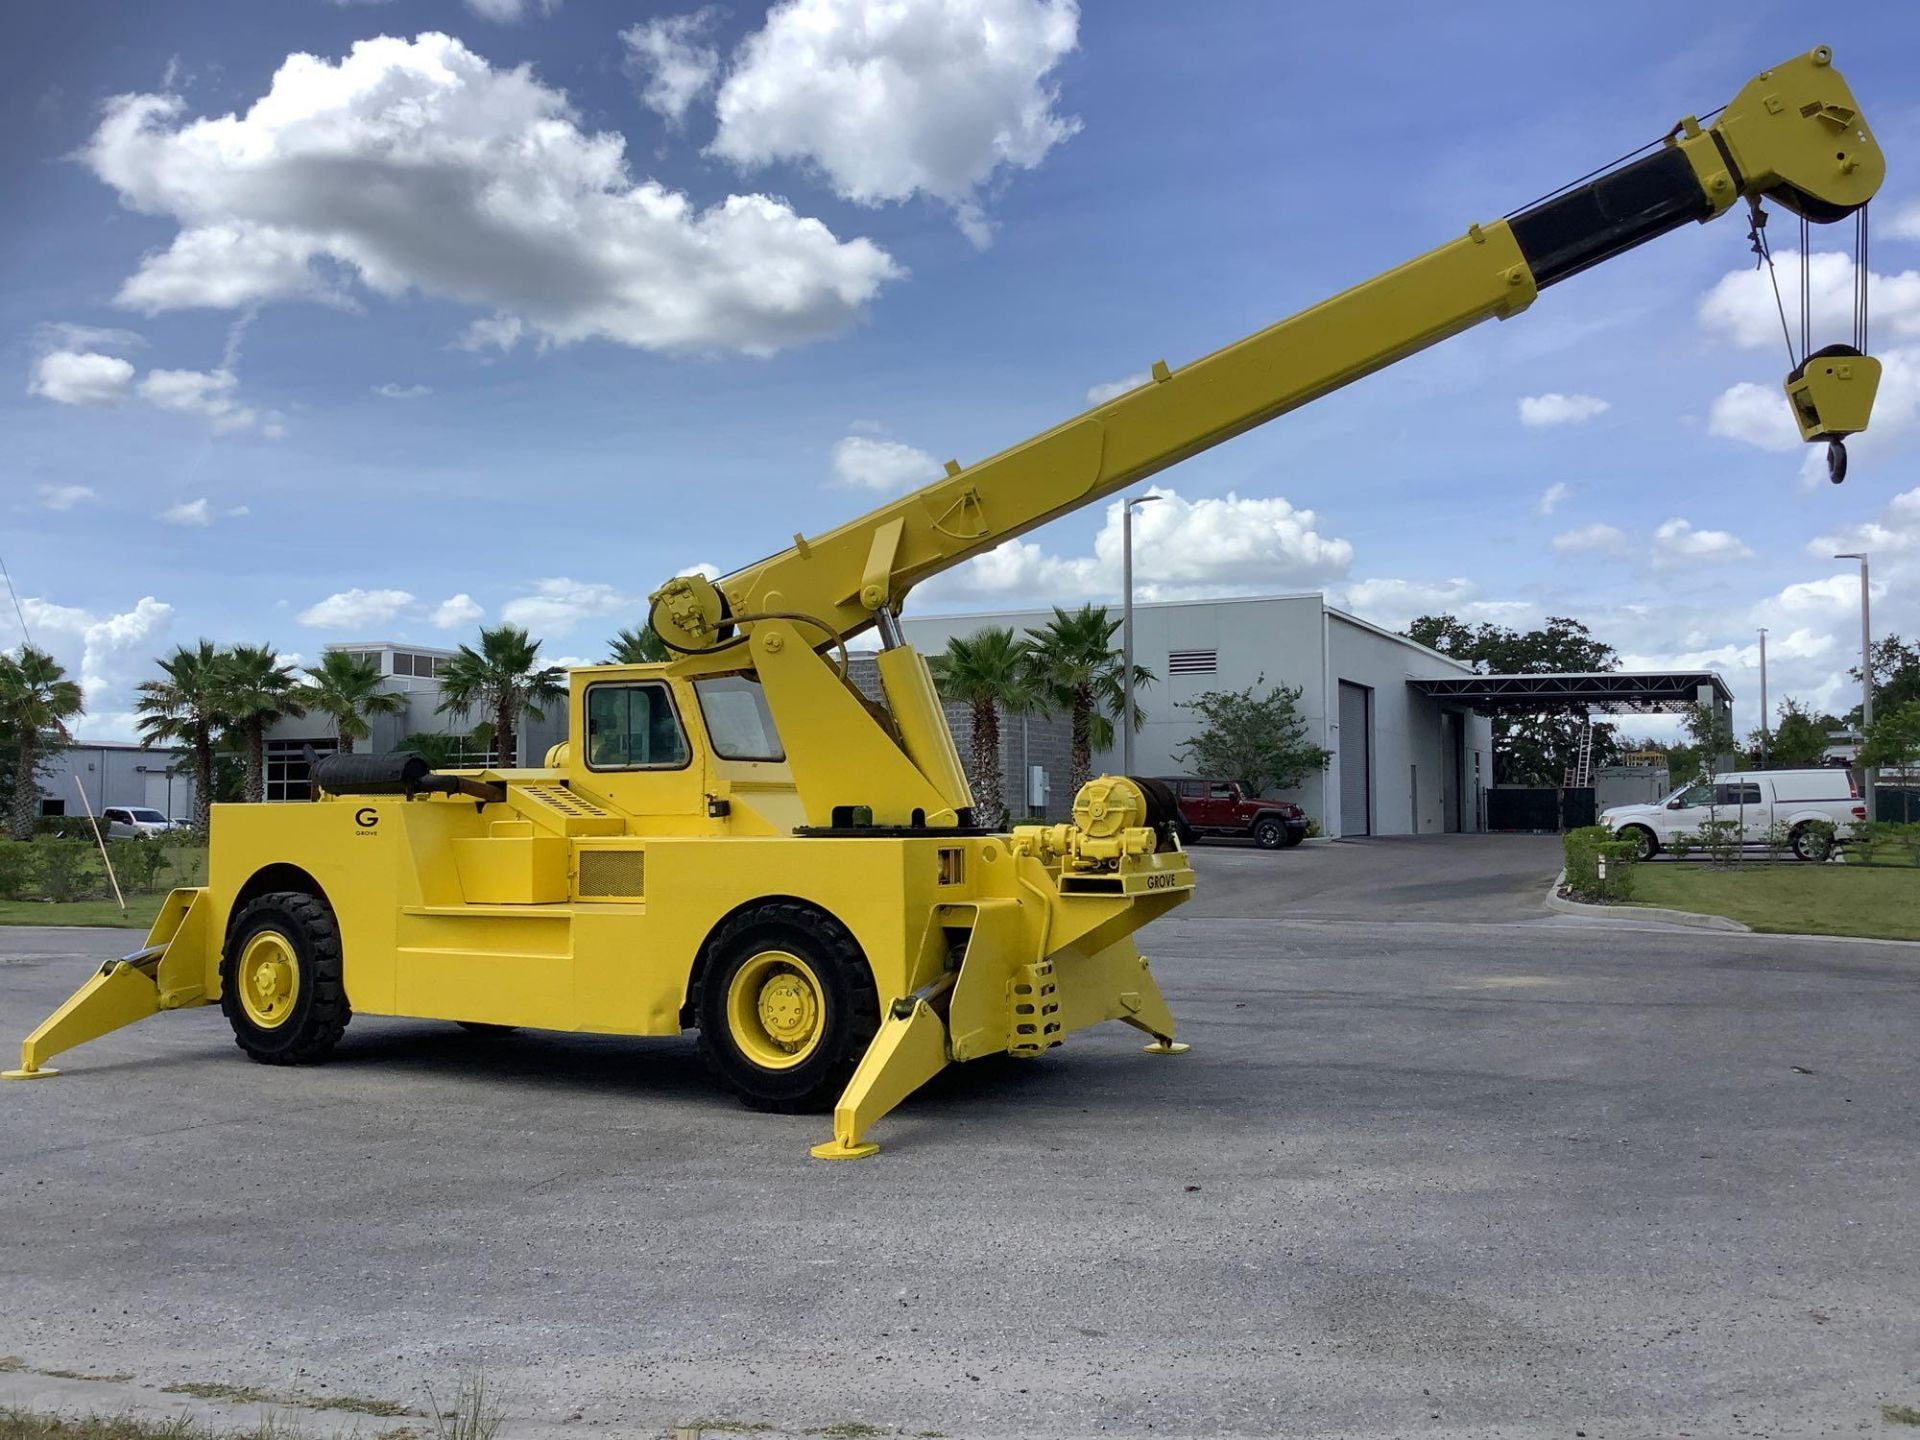 GROVE TRUCK CRANE MODEL IND1012, HYDRAULIC, TELESCOPIC, DIESEL,OUTRIGGER, RUNS AND OPERATES - Image 5 of 18